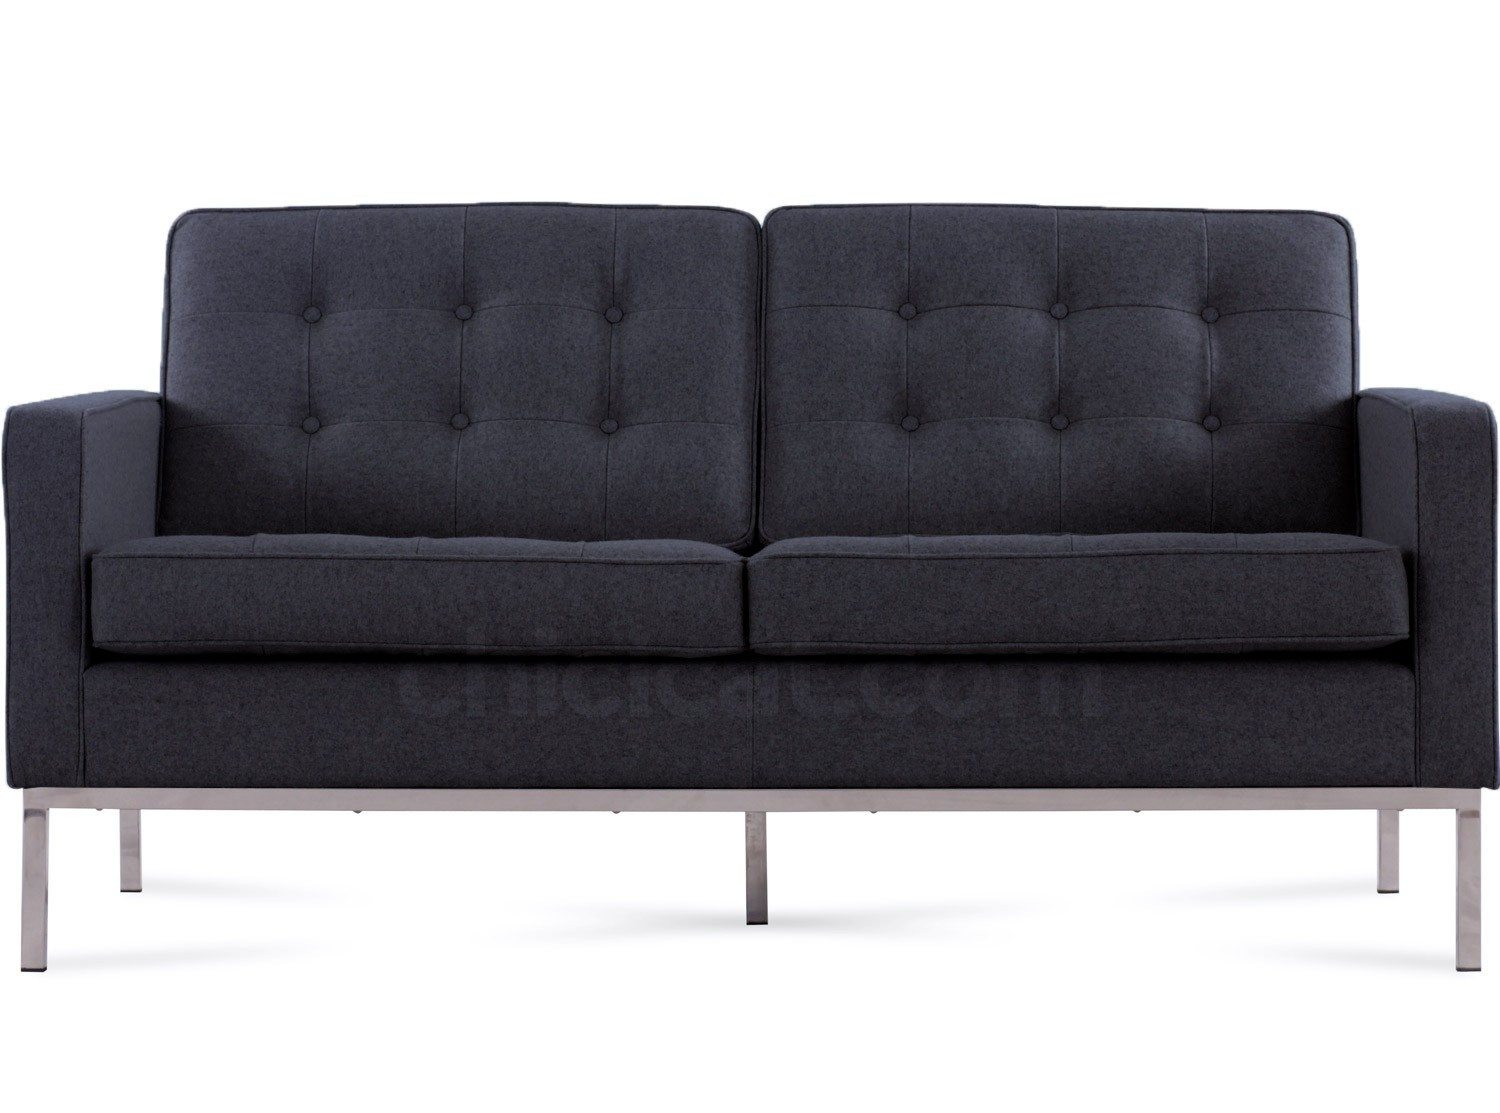 Florence Knoll Sofa 2 Seater Charcoal Wool Platinum